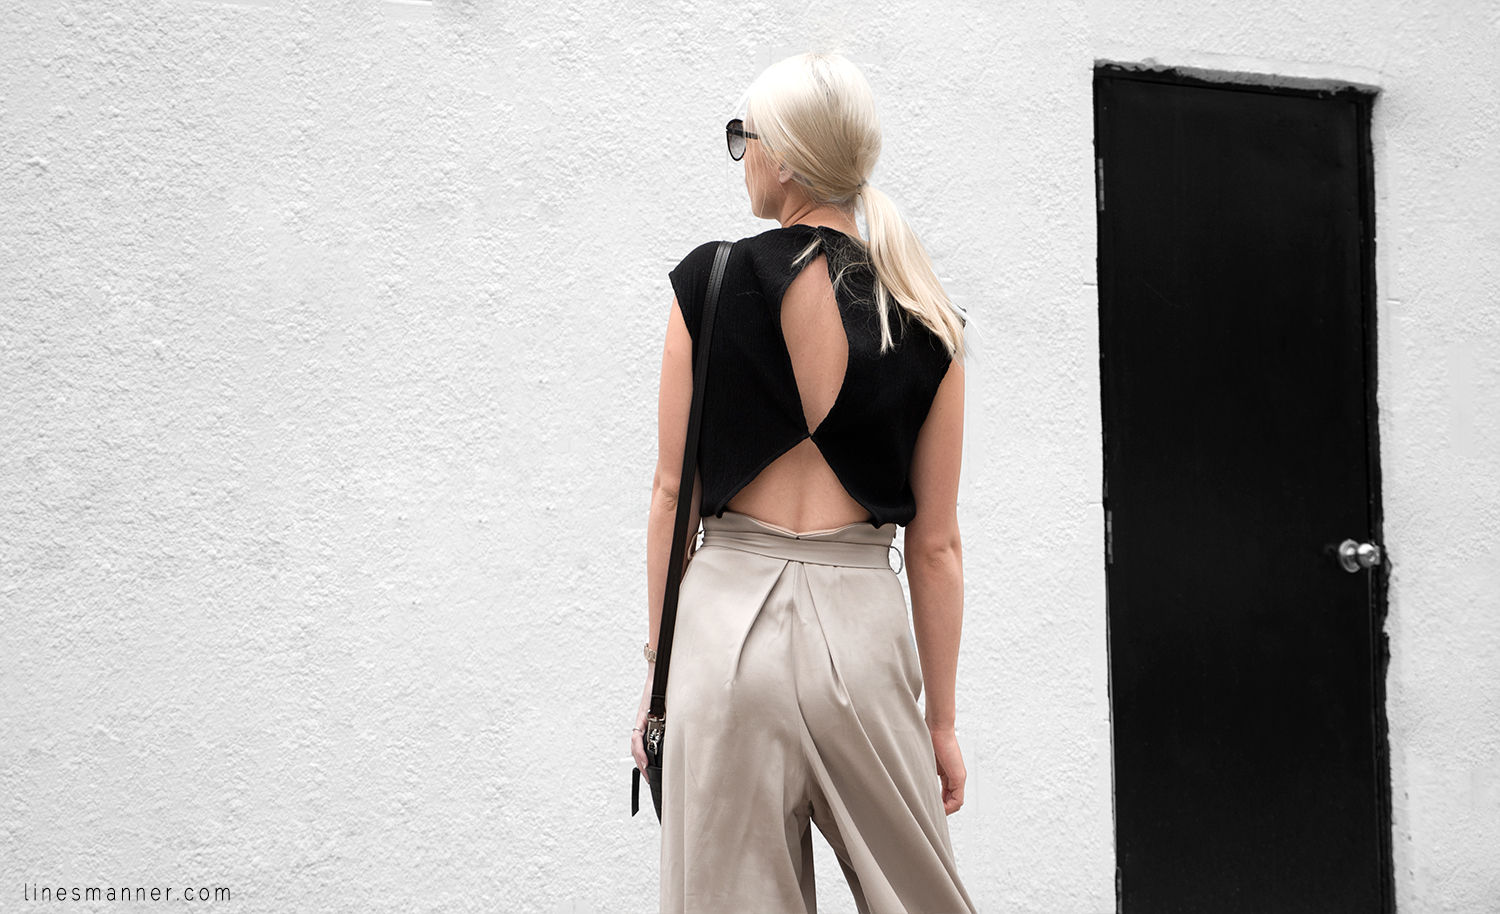 Lines-Manner-Neutrals-Quality-Lora_Gene-Wide_Leg_Pant-Modern-Sophistication-Tailored-Essentials-Details-Simplicity-Summer_vibes-Volume-Proportion-Flowy-12